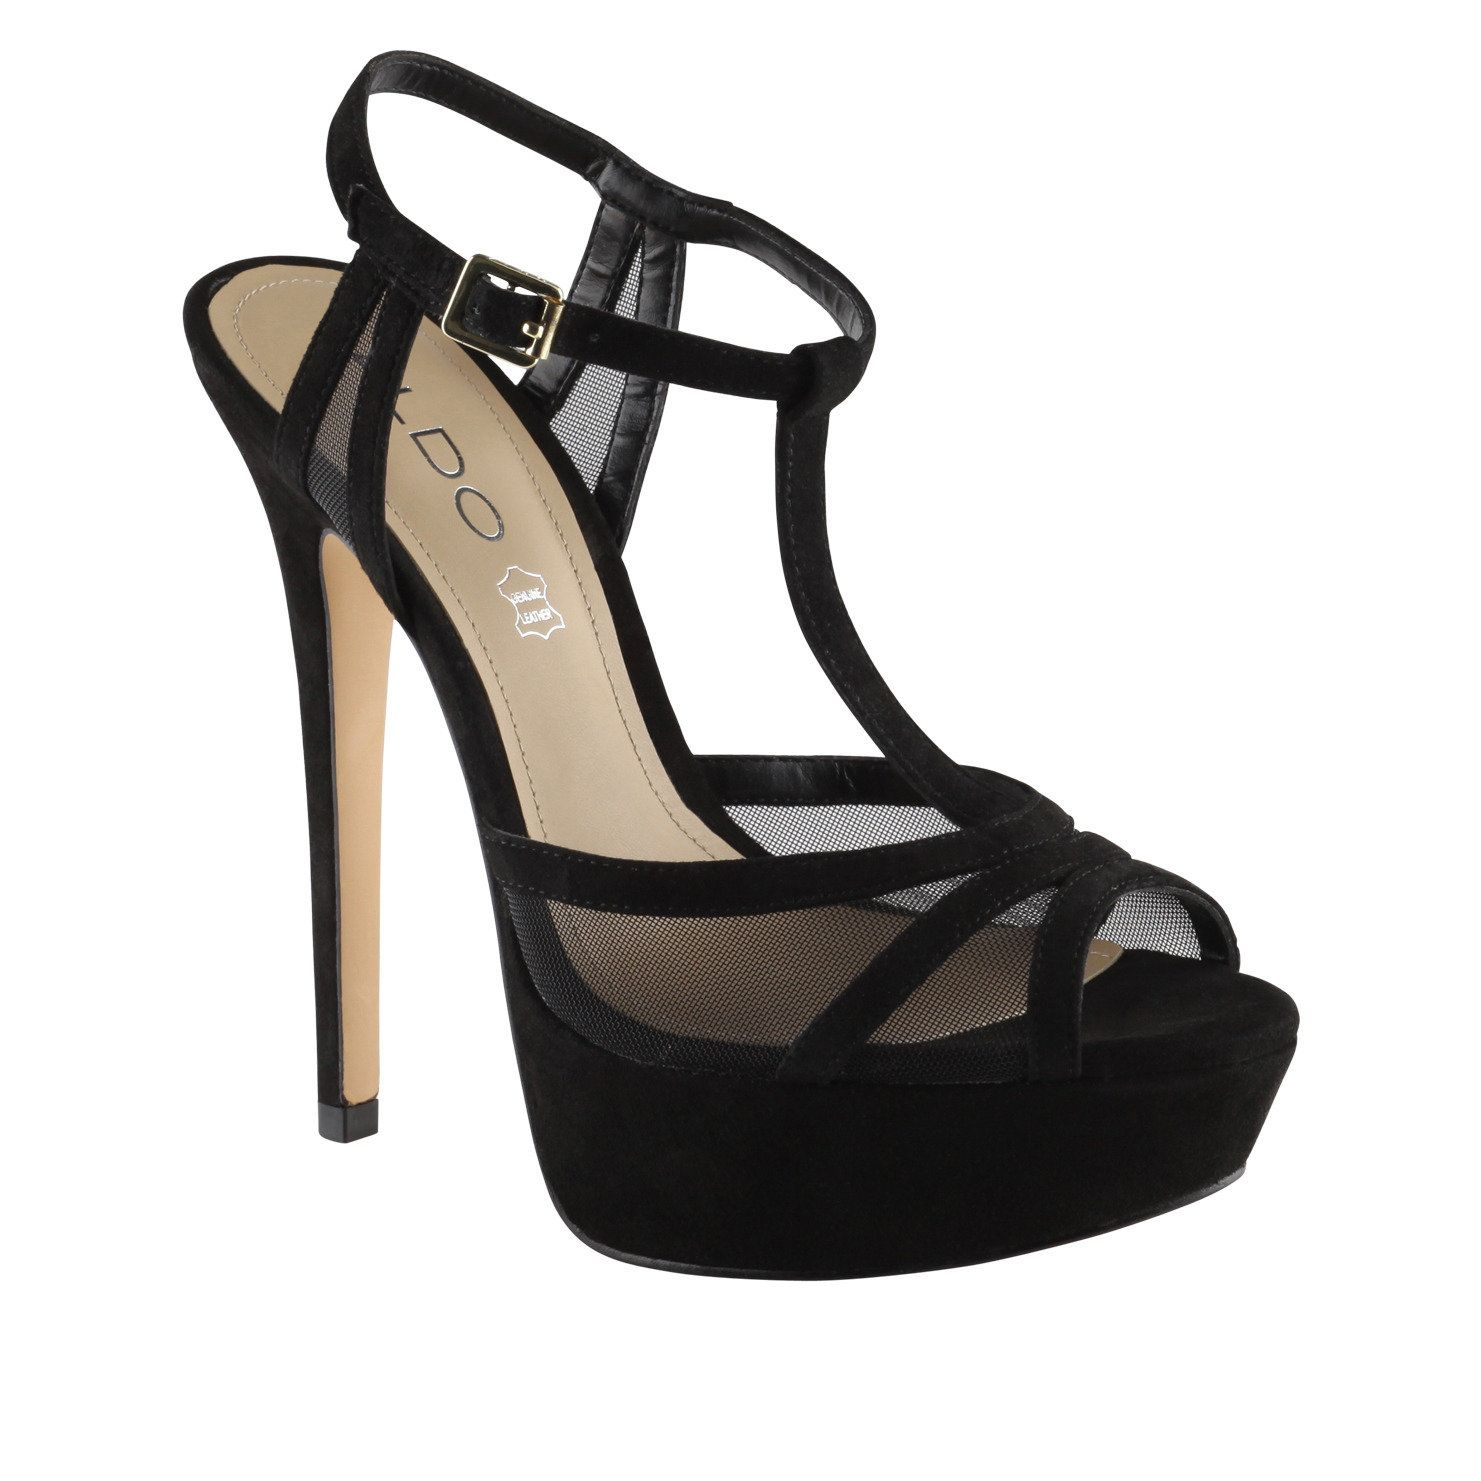 Black sandals for sale - Women S High Heels Sandals For Sale At The Aldo Shoes Online Store